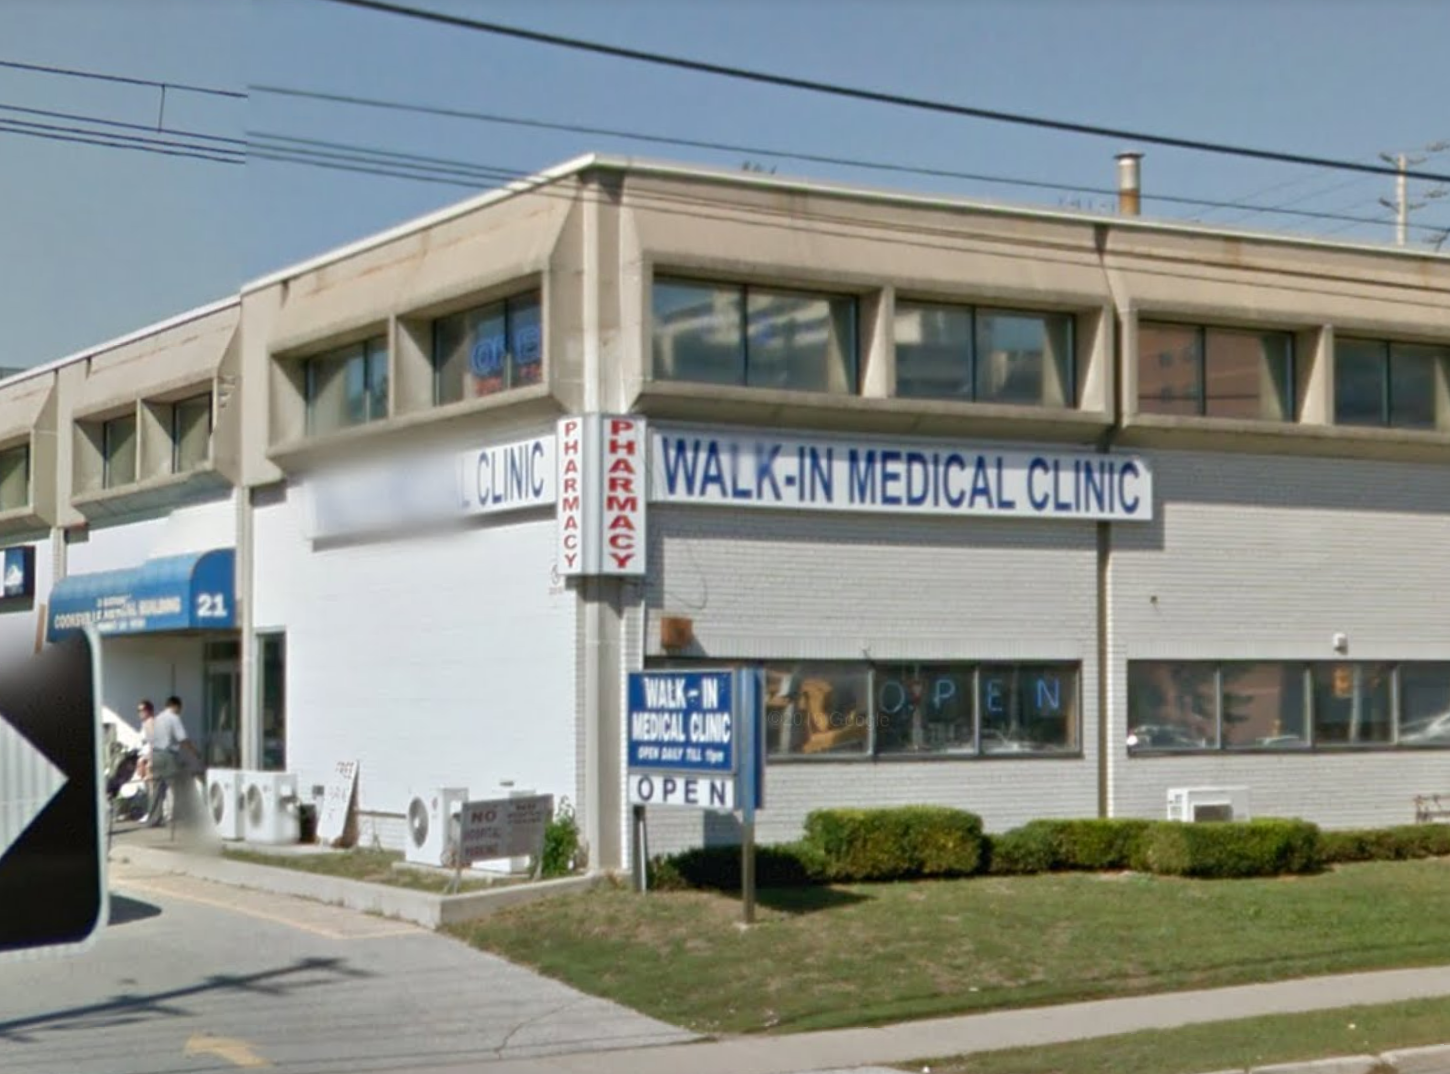 The Rapid Access to Medical Specialists clinic in Mississauga, Ontario